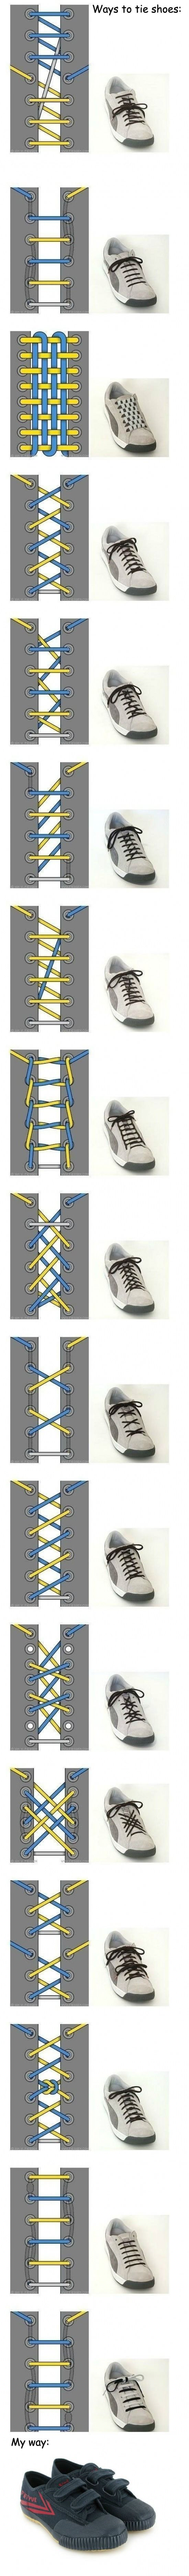 Several ways to tie shoes. I have to try some of these (except that last one).